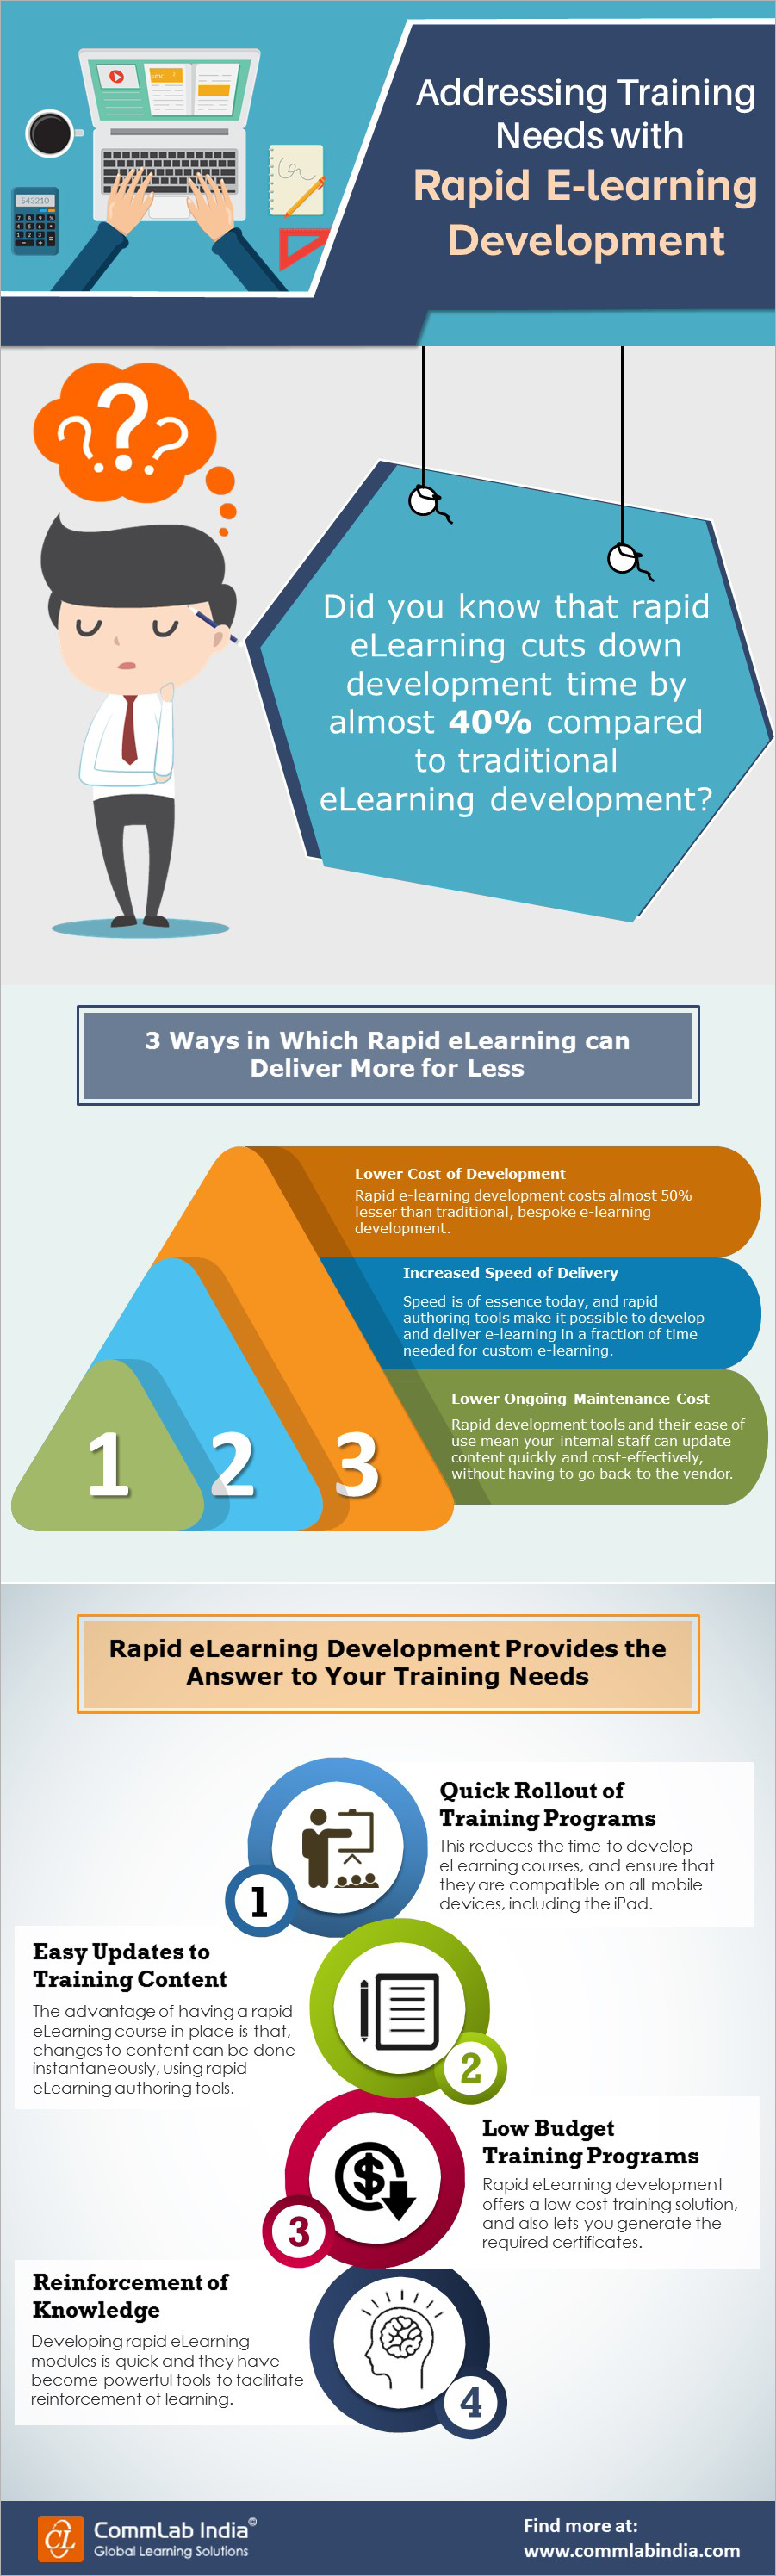 Addressing Online Training Needs with Rapid E-learning Development [Infographic]